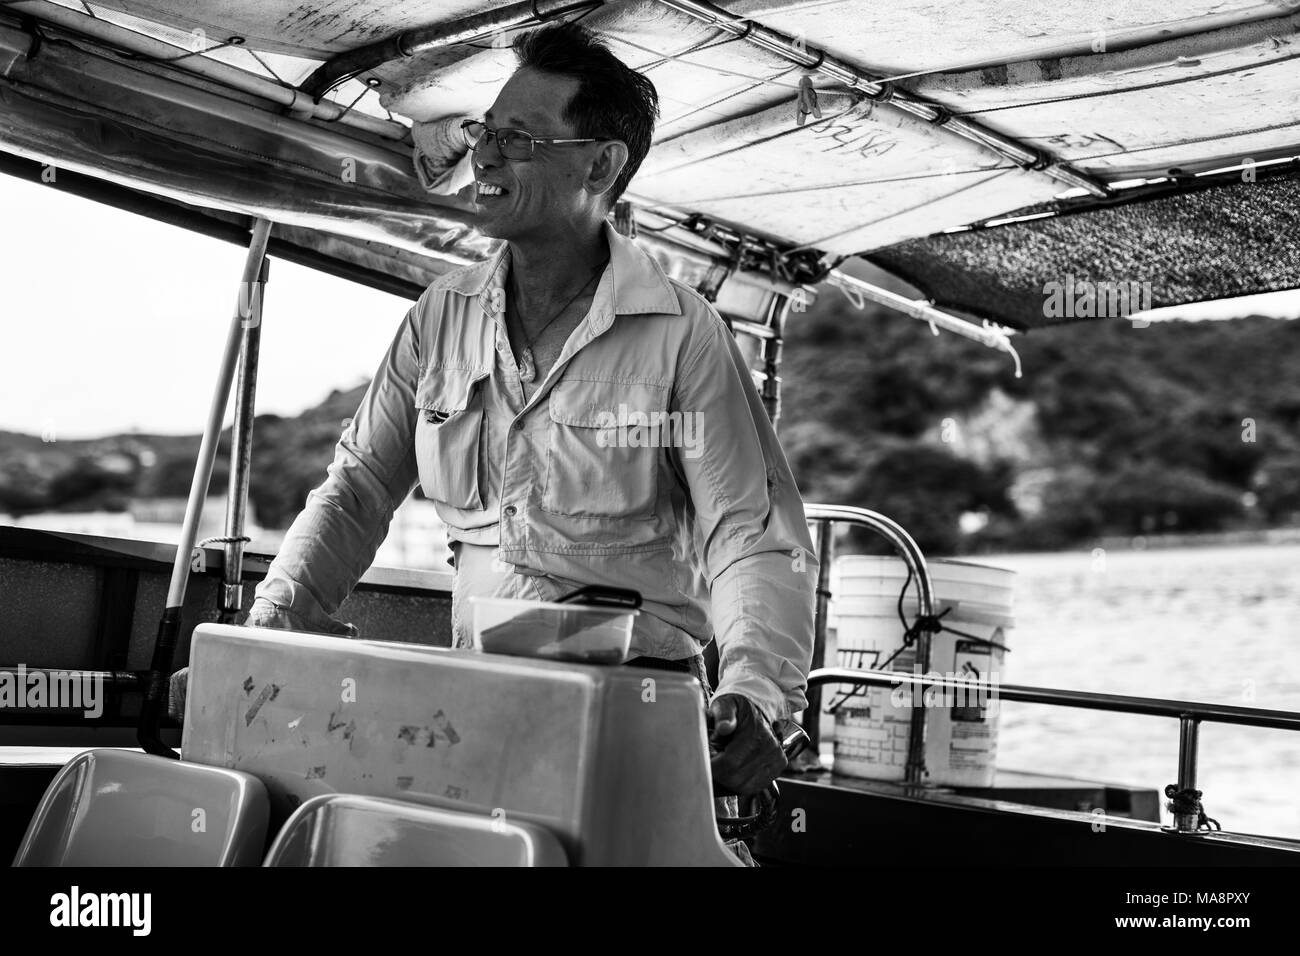 A man drives a tourist boat to look for white dolphins from the fishing village of Tai O, Hong Kong - Stock Image